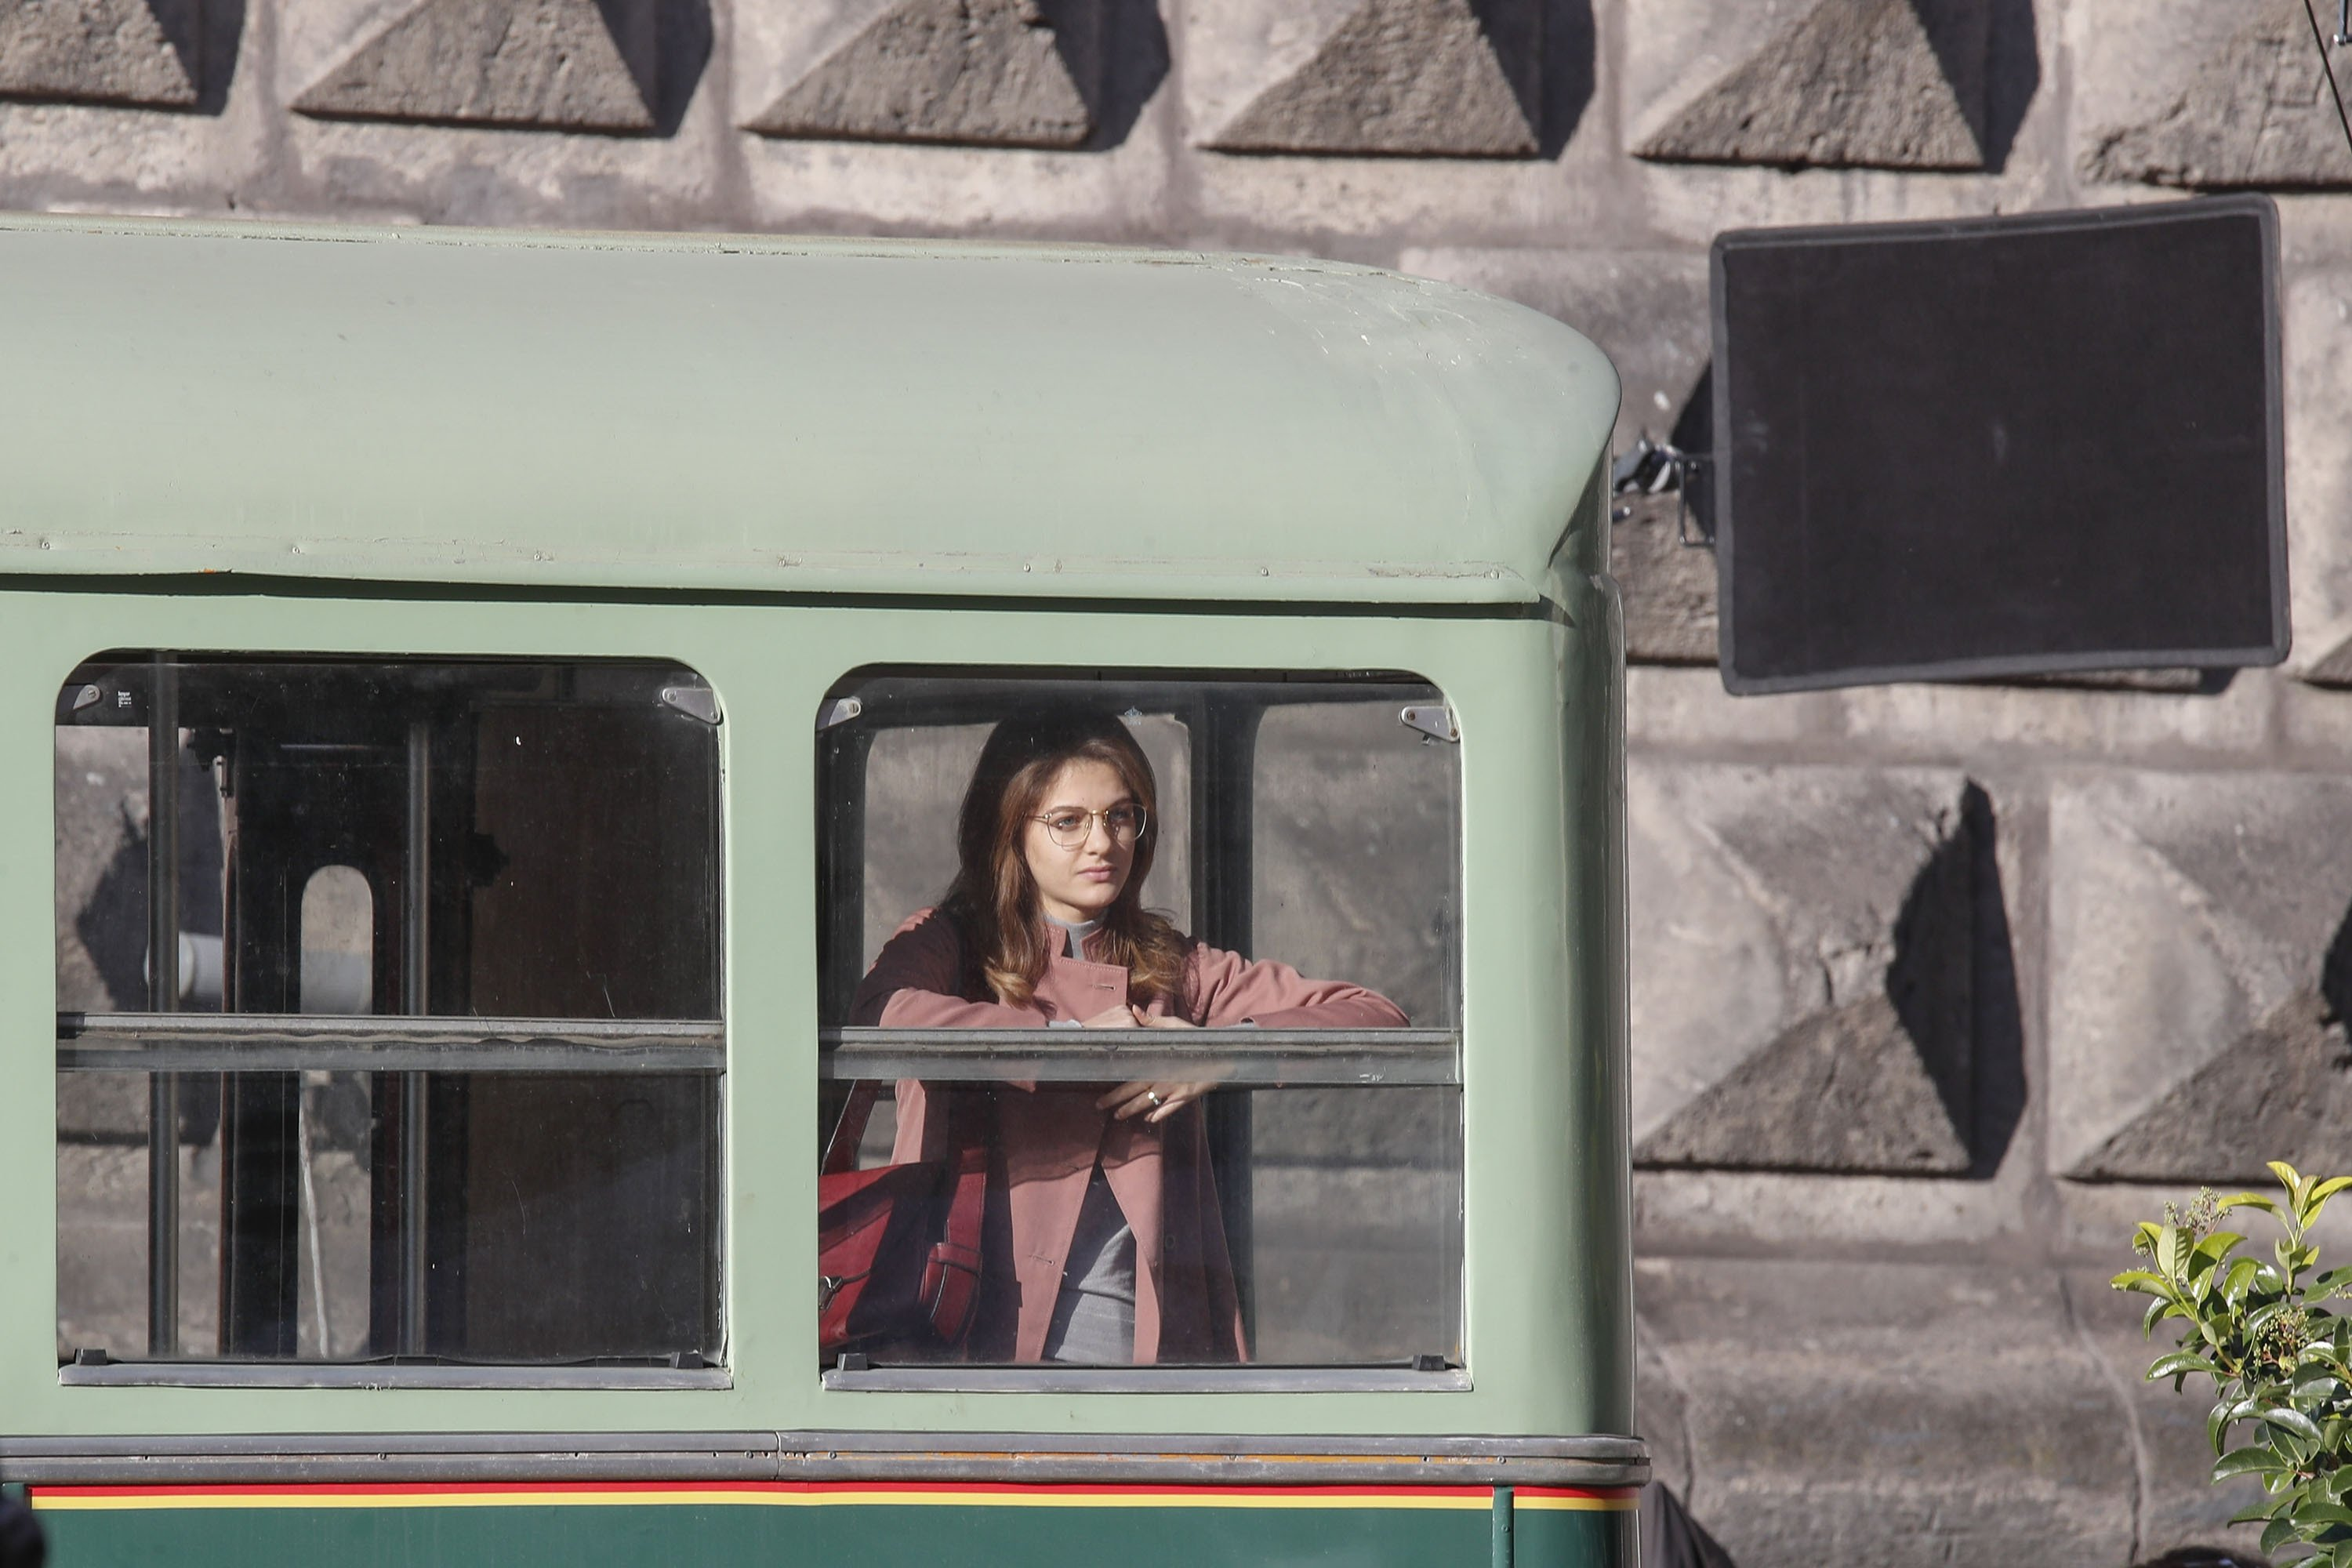 ActressMargherita Mazzucco looks out the window of an old bus on the set of the TV series 'My Brilliant Friend' ('L'amica geniale') based on the novels of Elena Ferrante, in Naples, Italy, Jan. 13, 2021. (Getty Images)